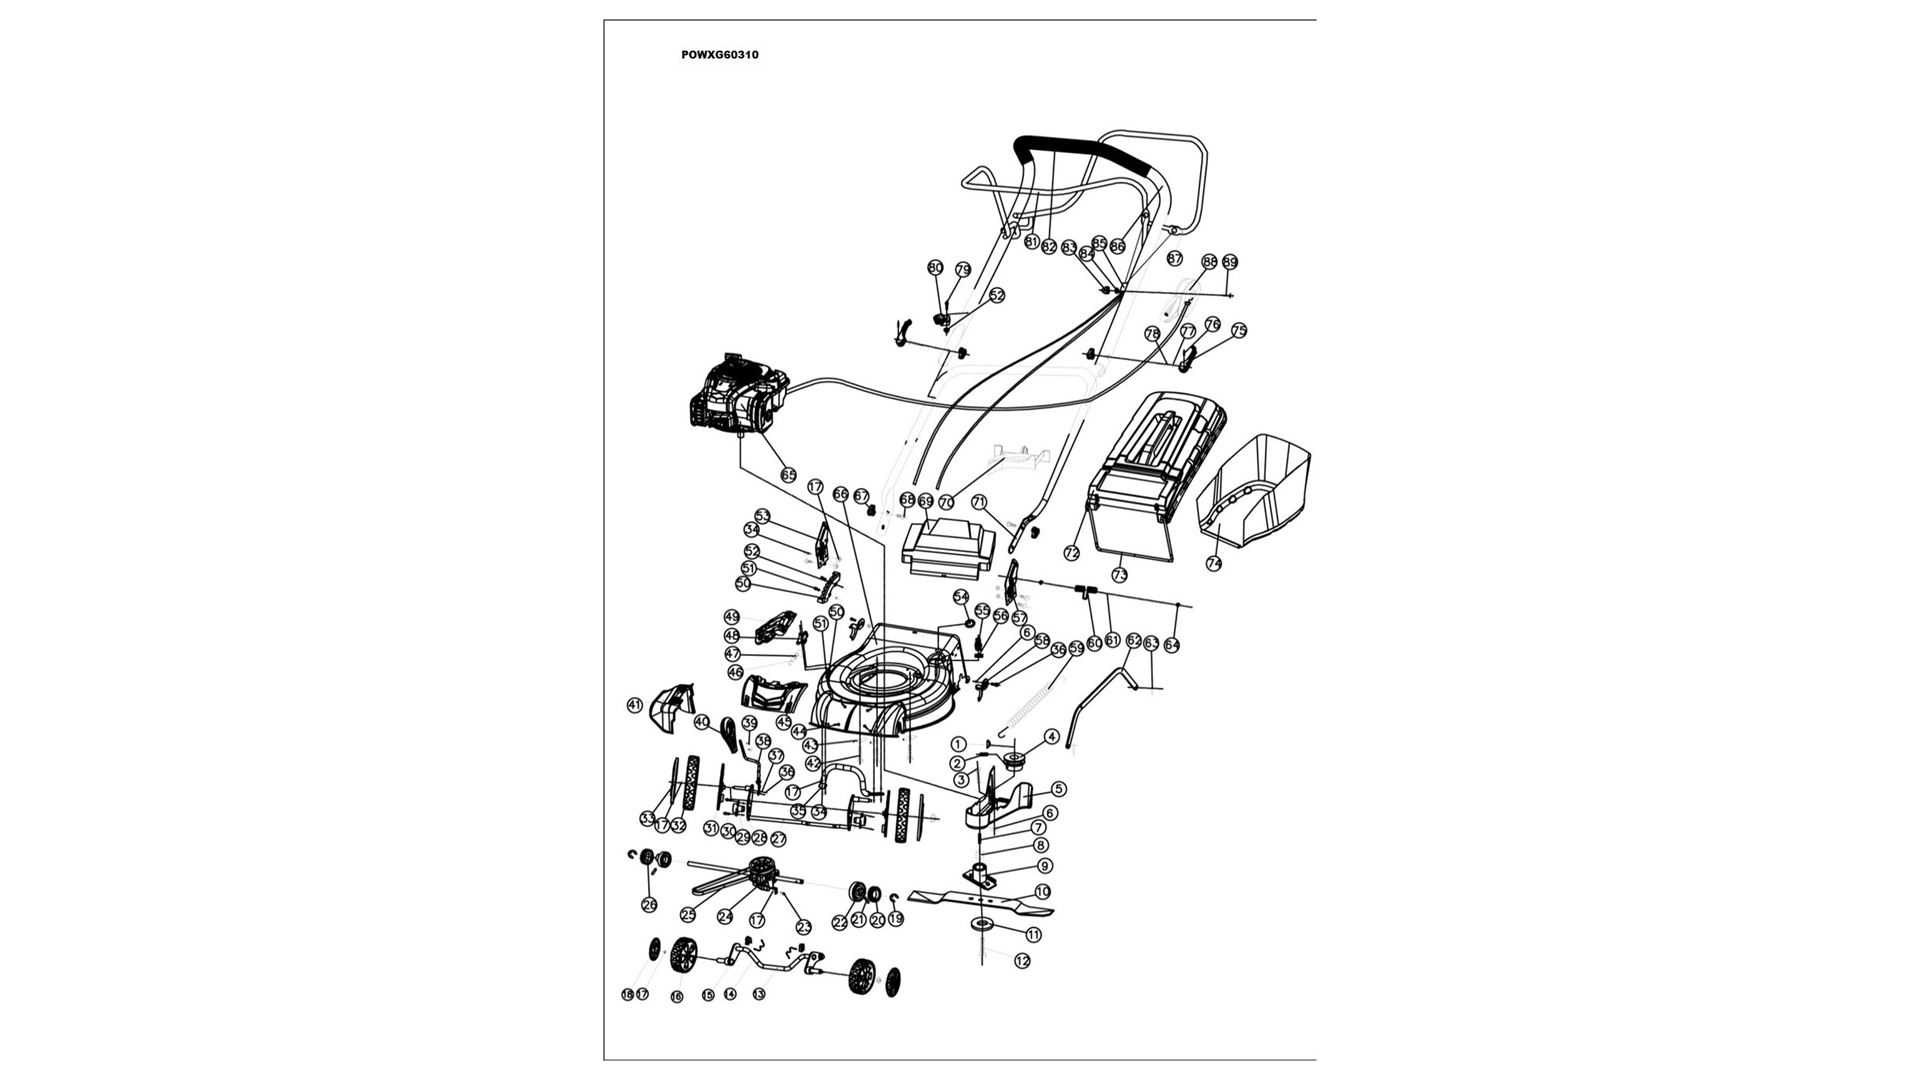 Powxg60310 Lawnmower 125cc 460mm Bs Champion 196cc Wiring Diagram Download Image